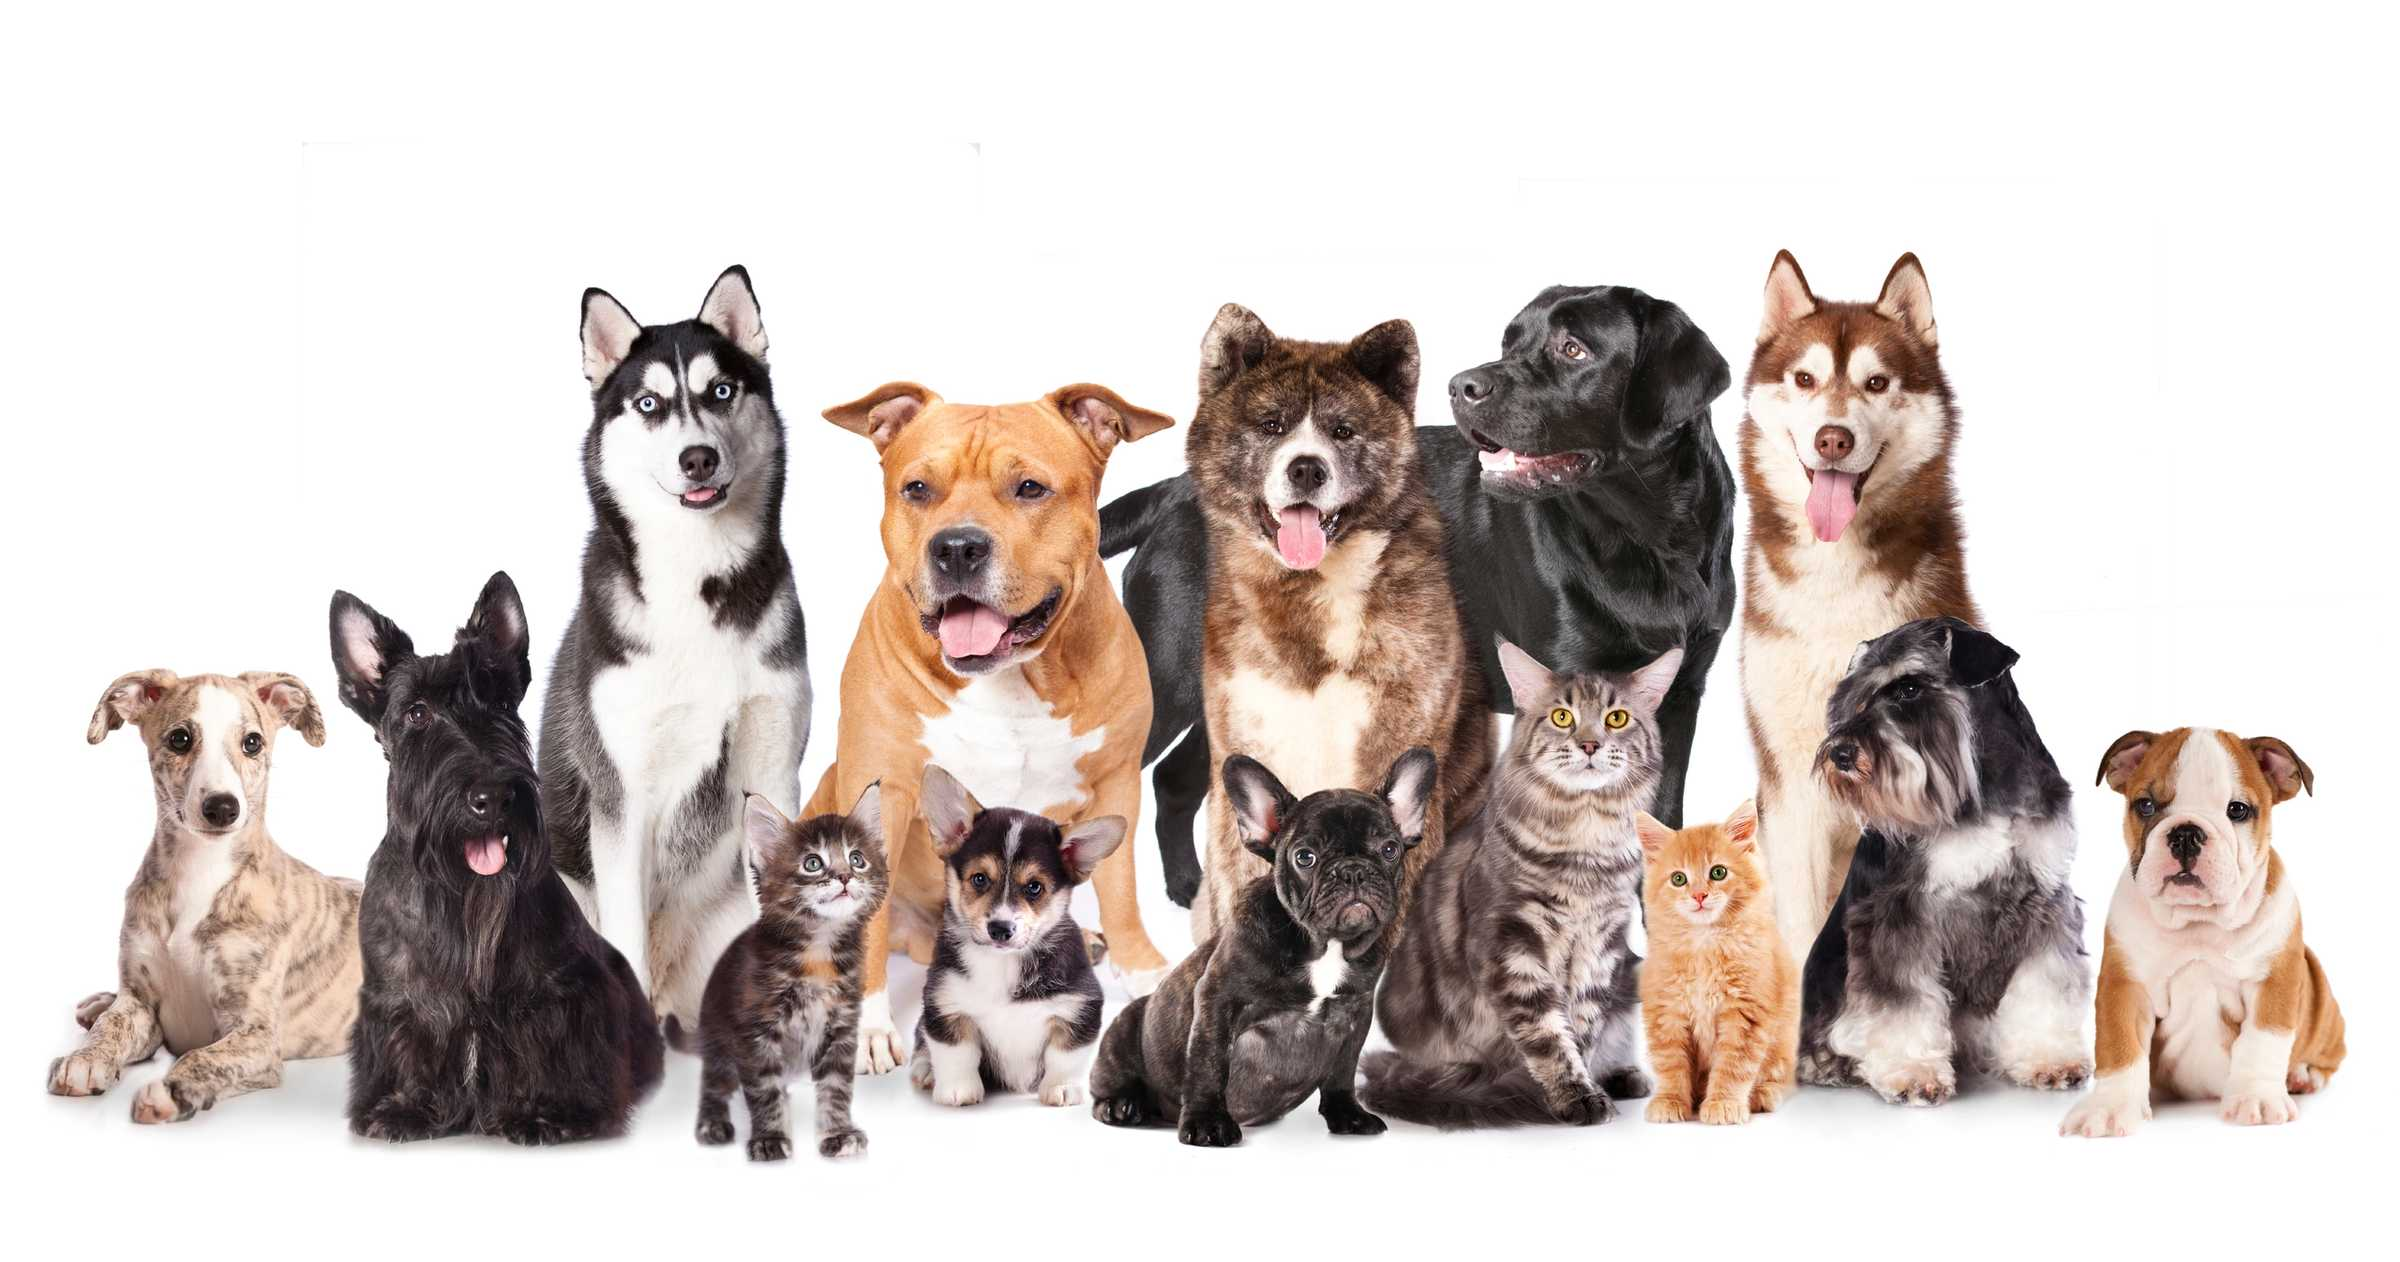 group pic of cats dogs and small pets